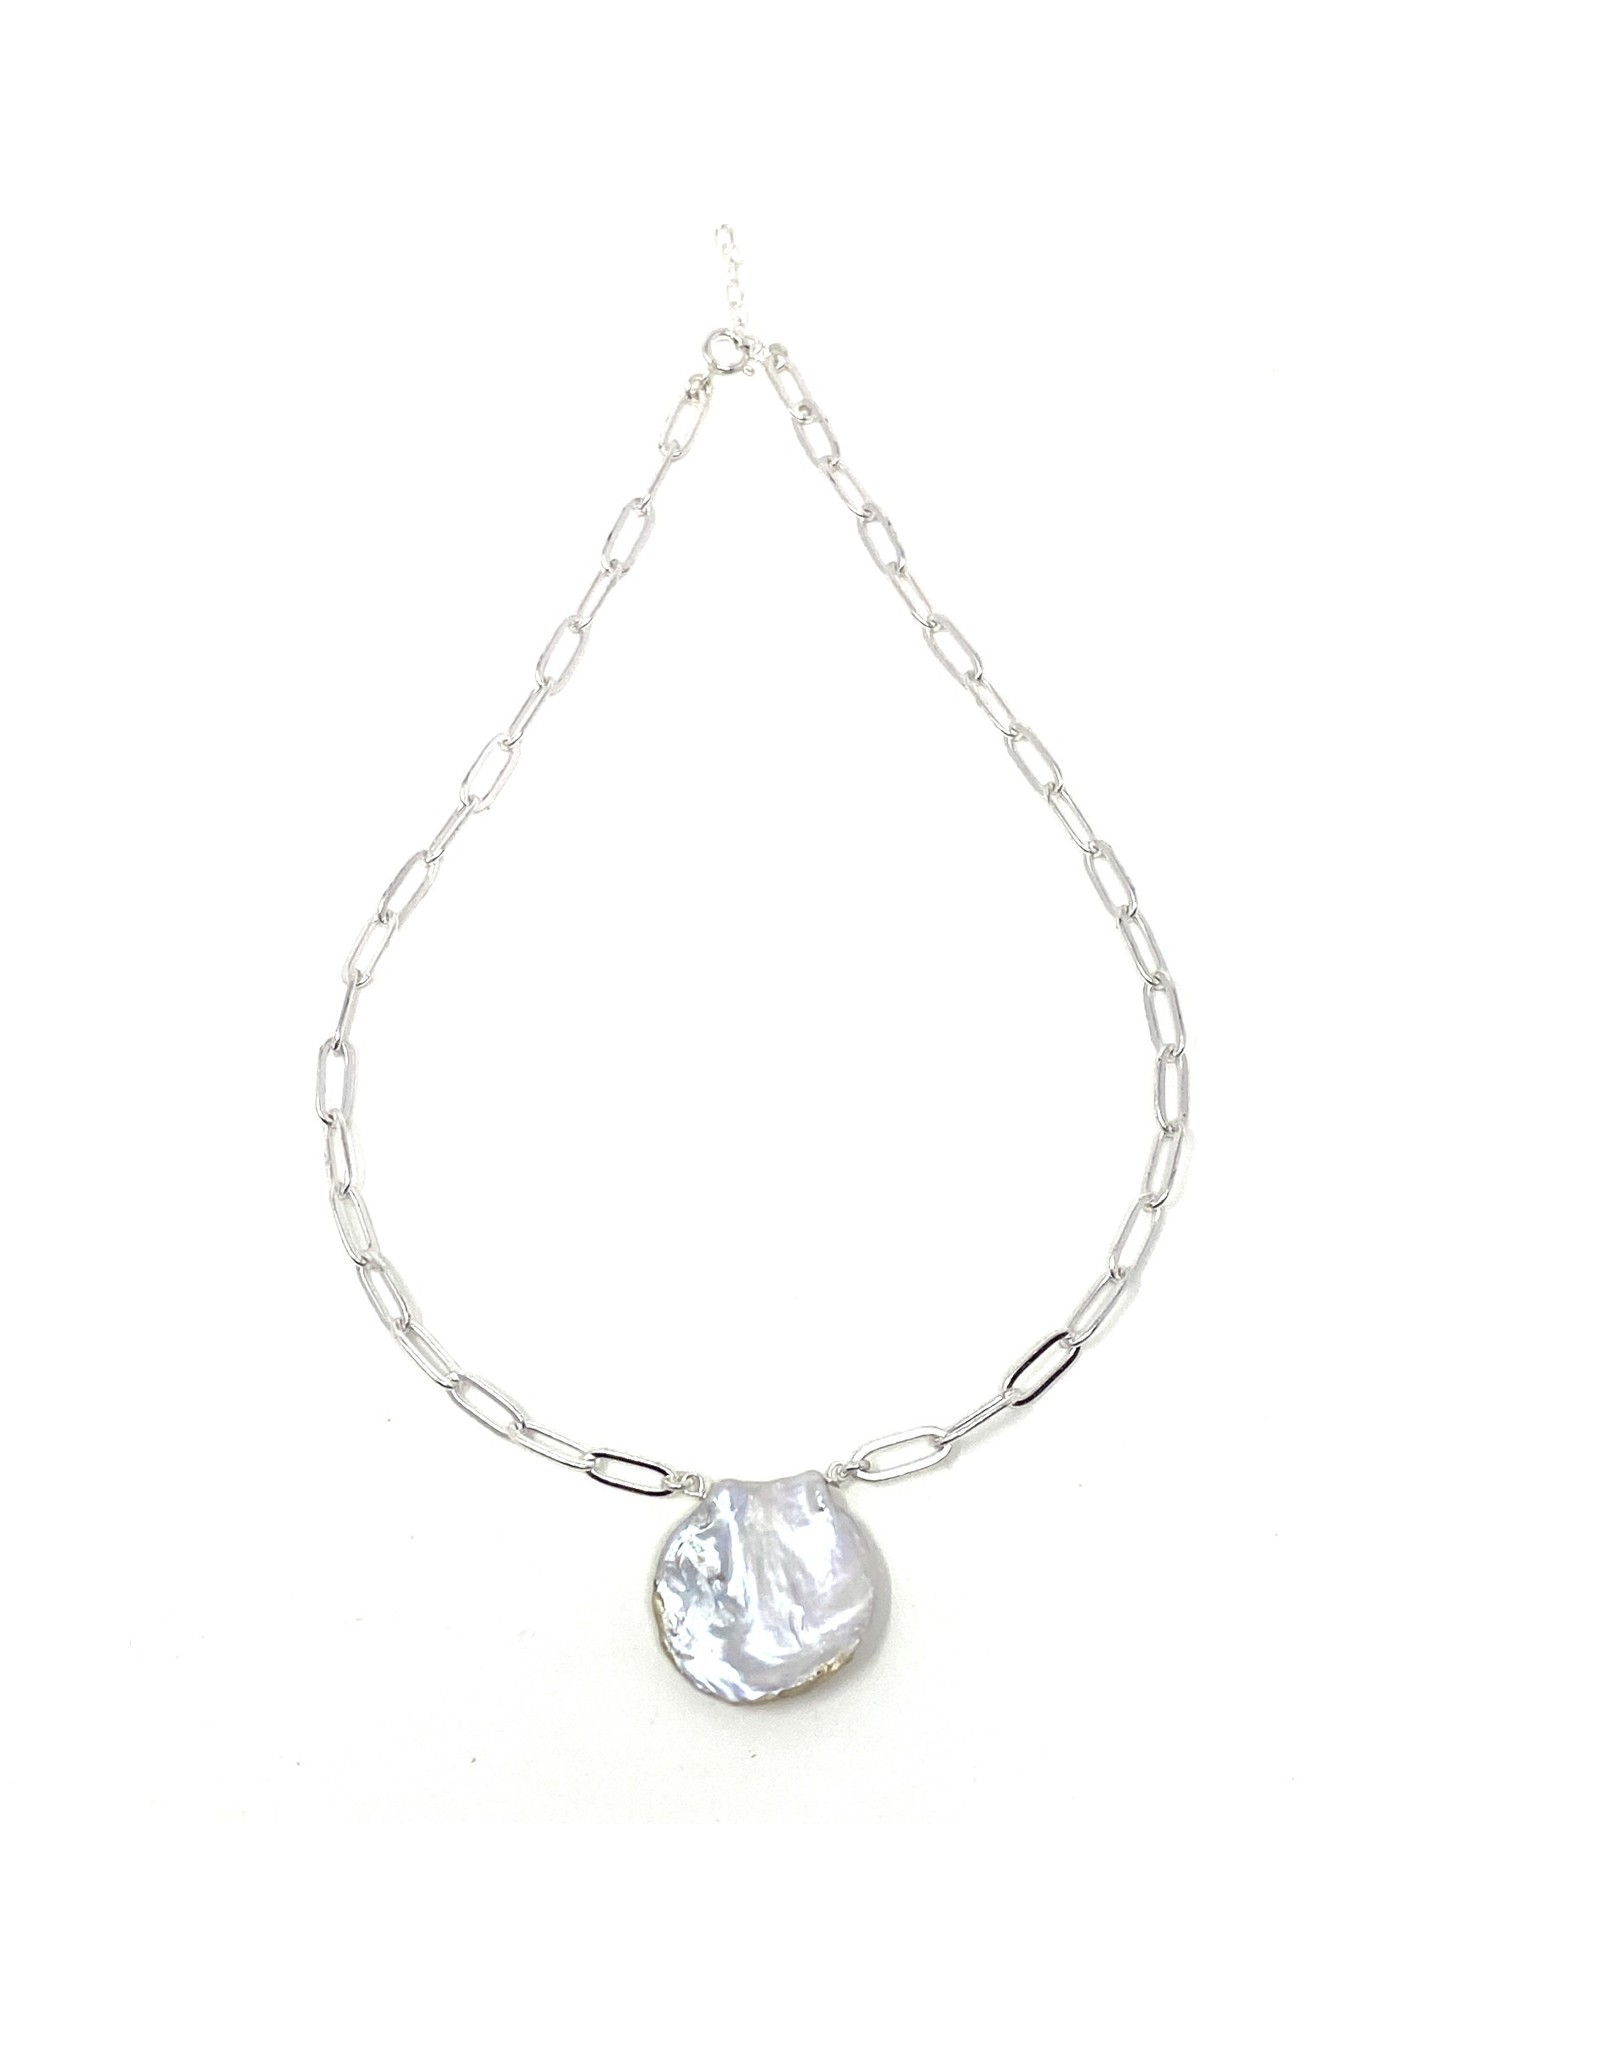 Paperclip Chain & Round Keshi Pearl